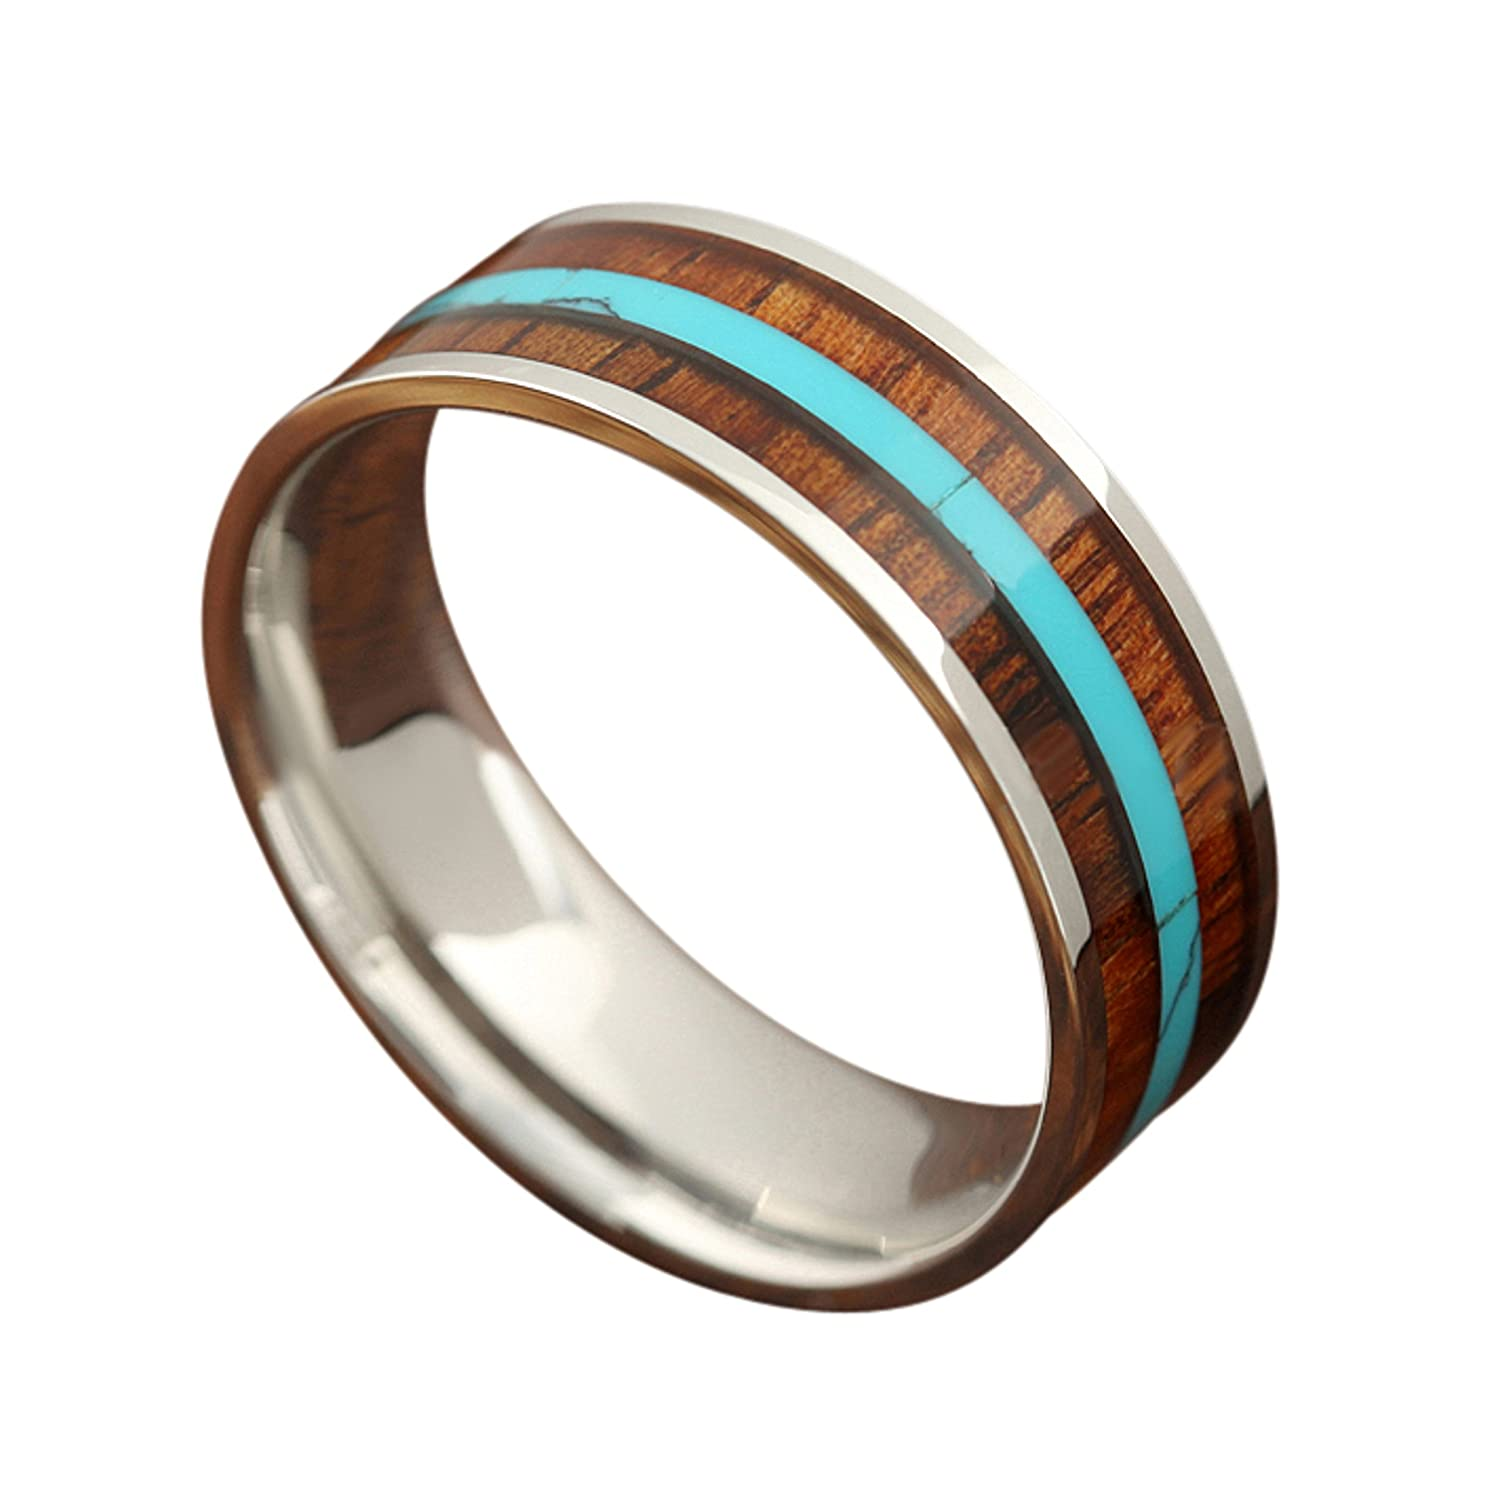 8mm Ring with Genuine Koa Wood Inlay and a Natural Turquoise